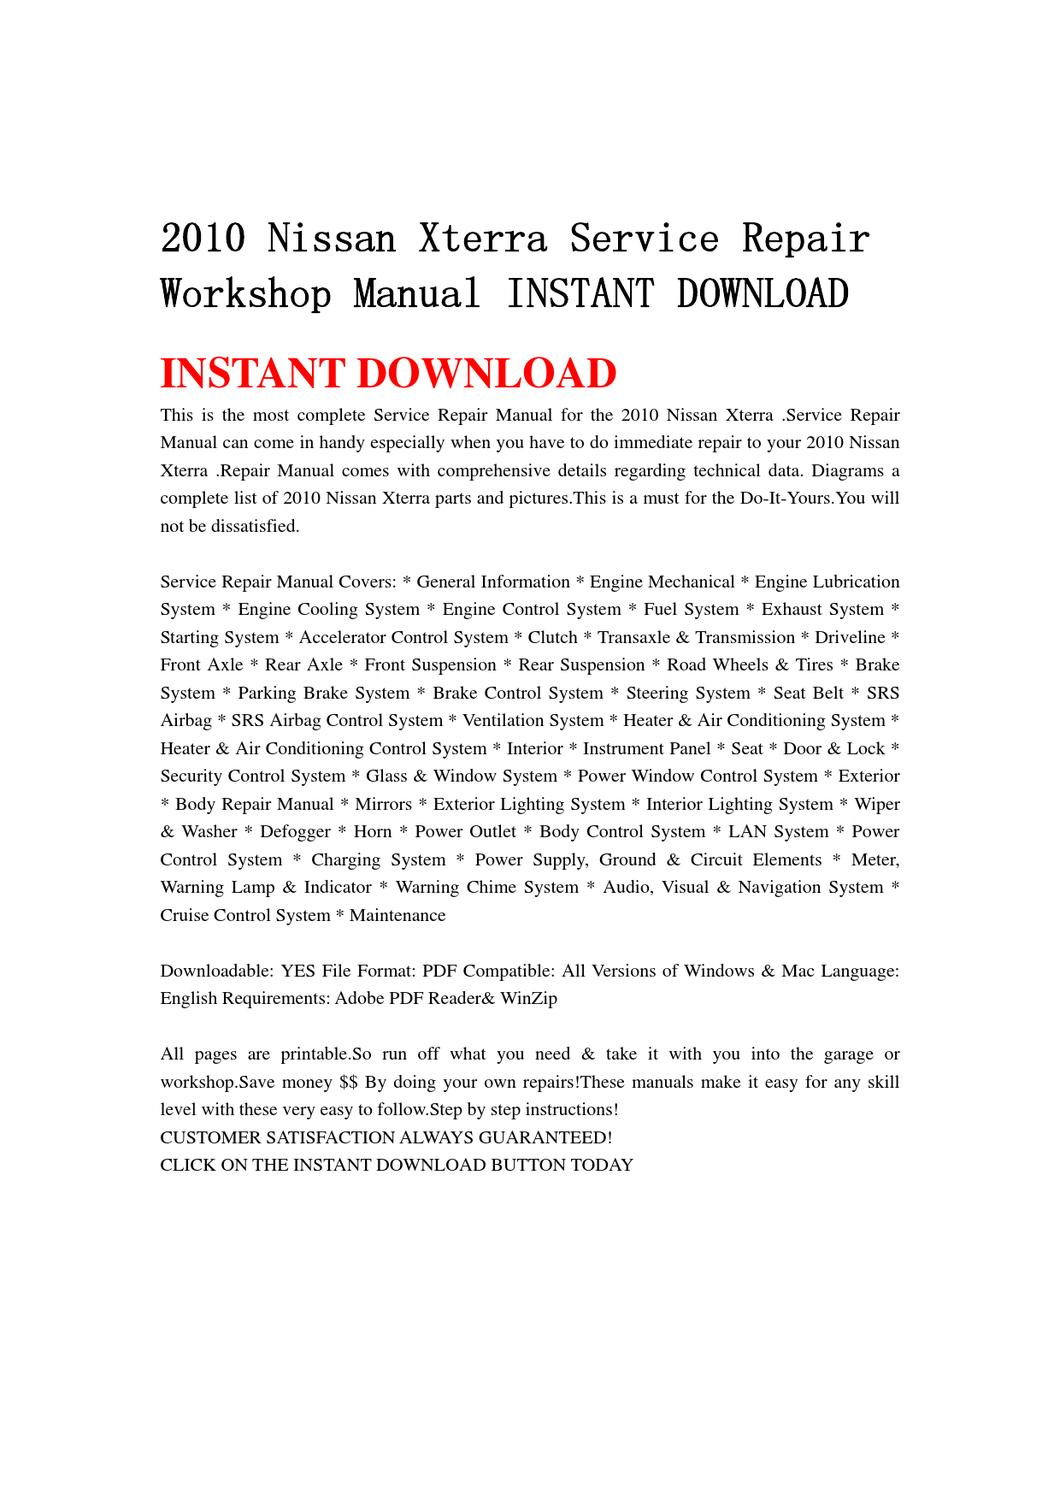 2010 Nissan Xterra Service Repair Workshop Manual INSTANT DOWNLOAD by chen  wei - issuu